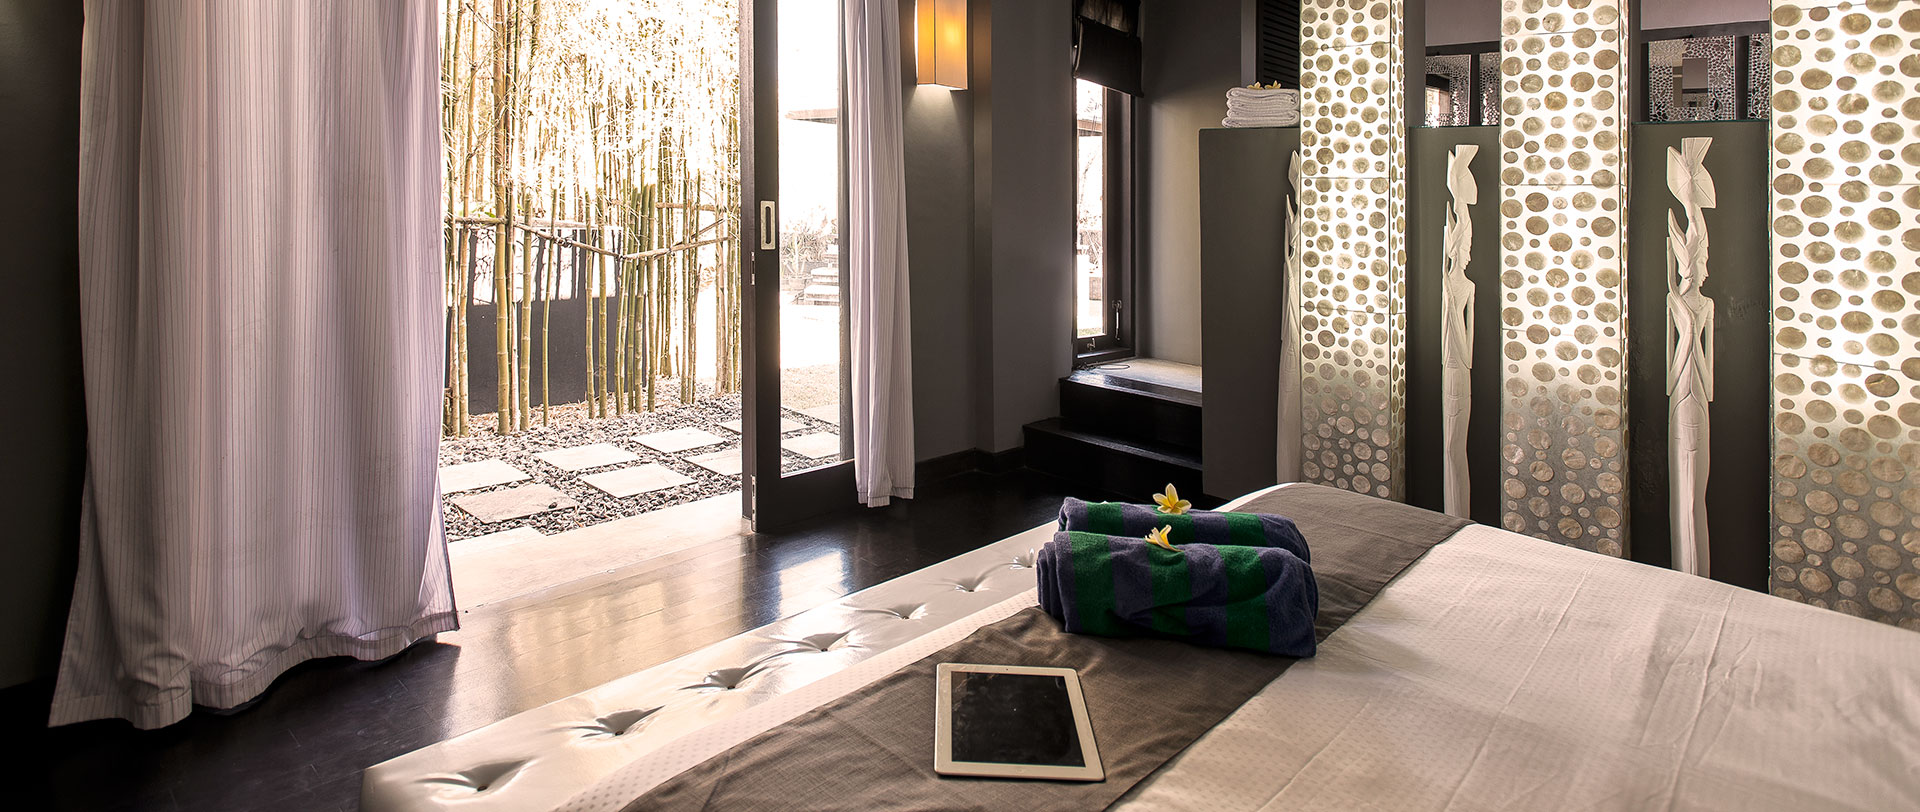 Villas in Bukit Jimbaran - Room Dot2_20160207043000